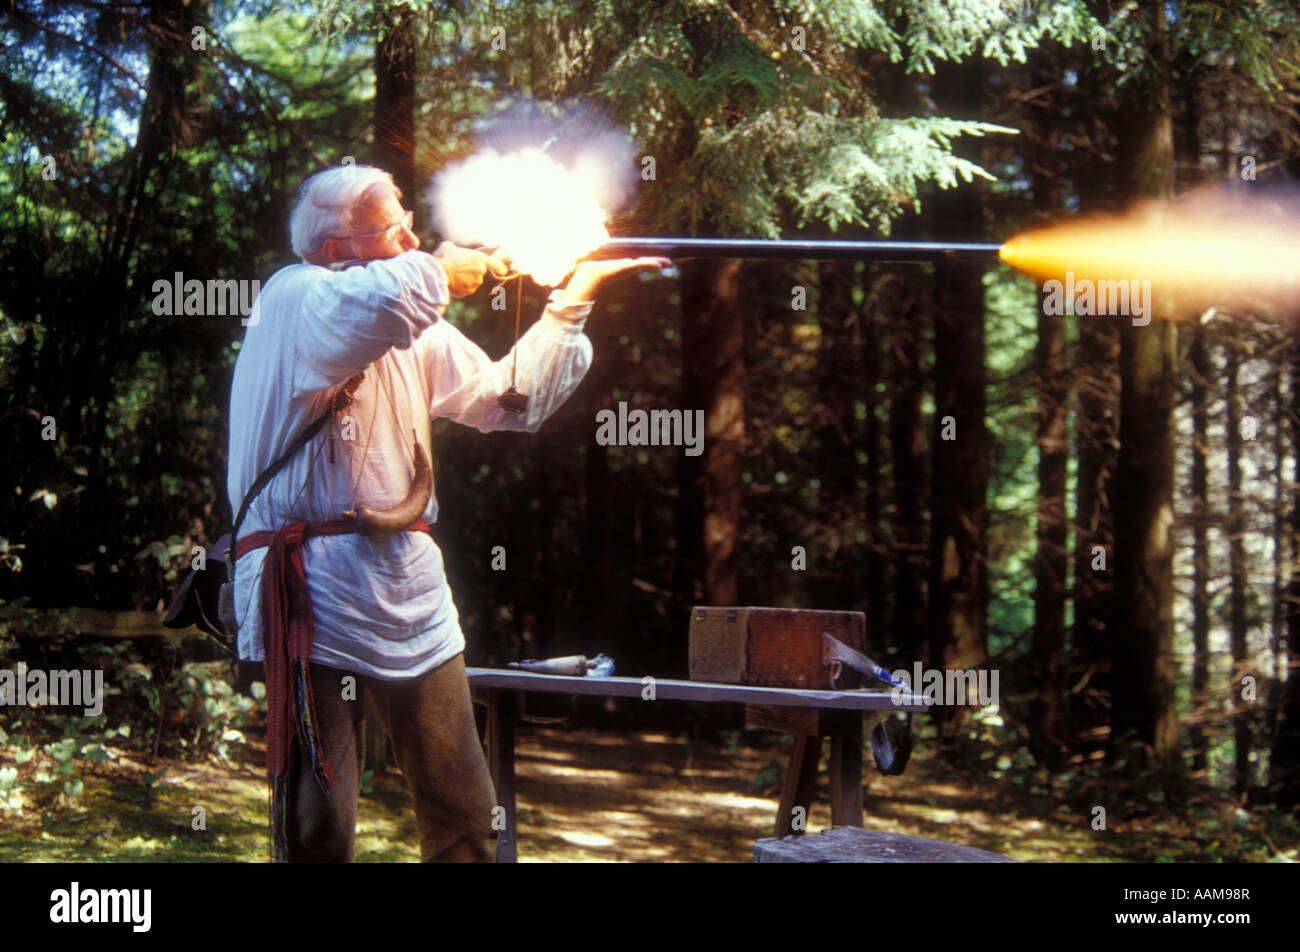 RANGER LIVING HISTORY GUN DEMONSTRATION LEWIS AND CLARK NATIONAL HISTORIC PARK - Stock Image